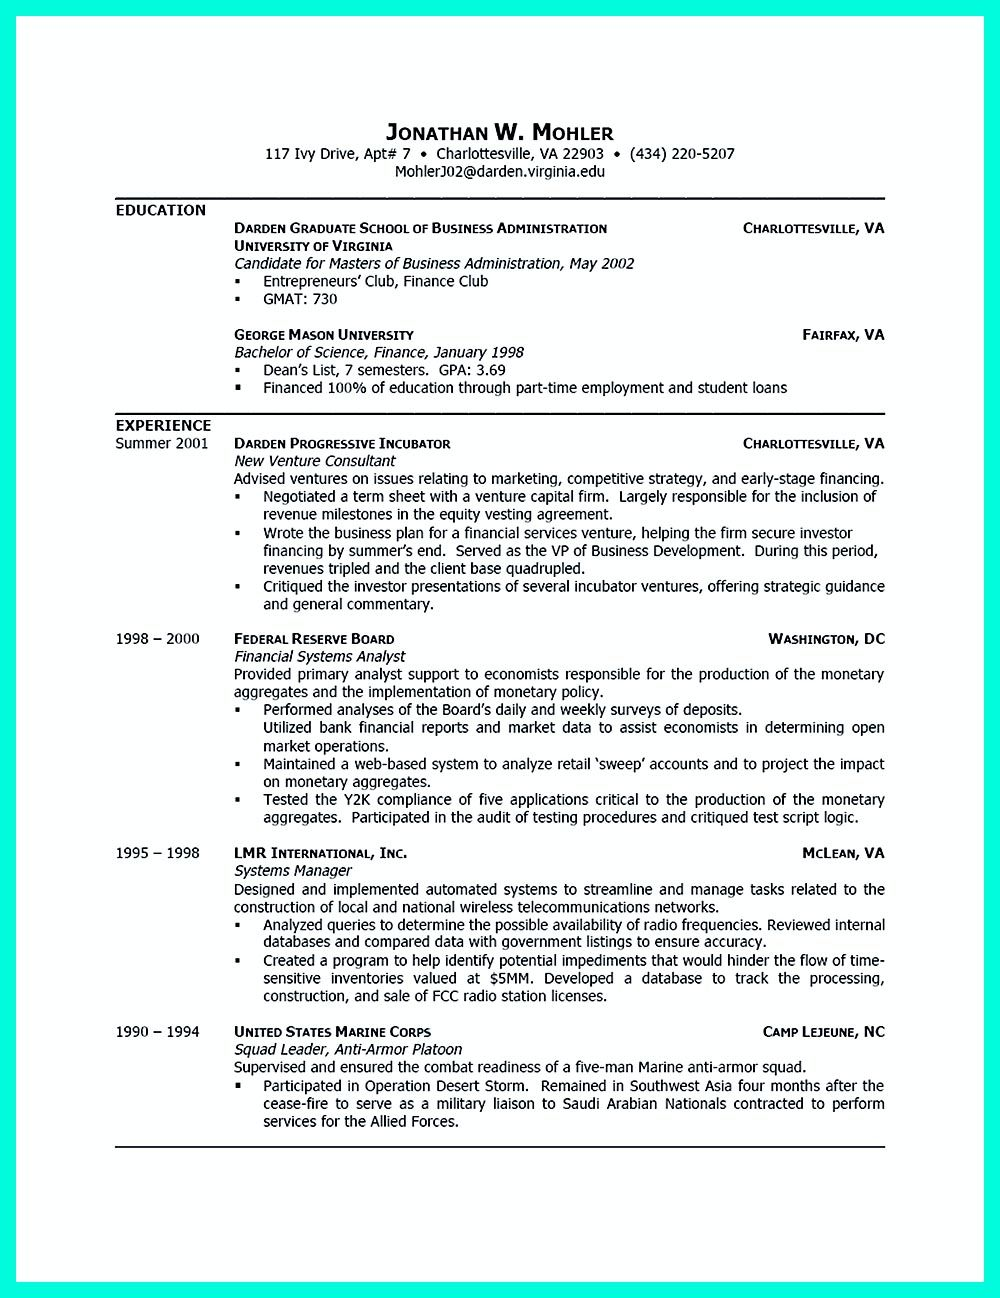 Resume Examples For College Students College Resume Is Designed For College Students Either With Or